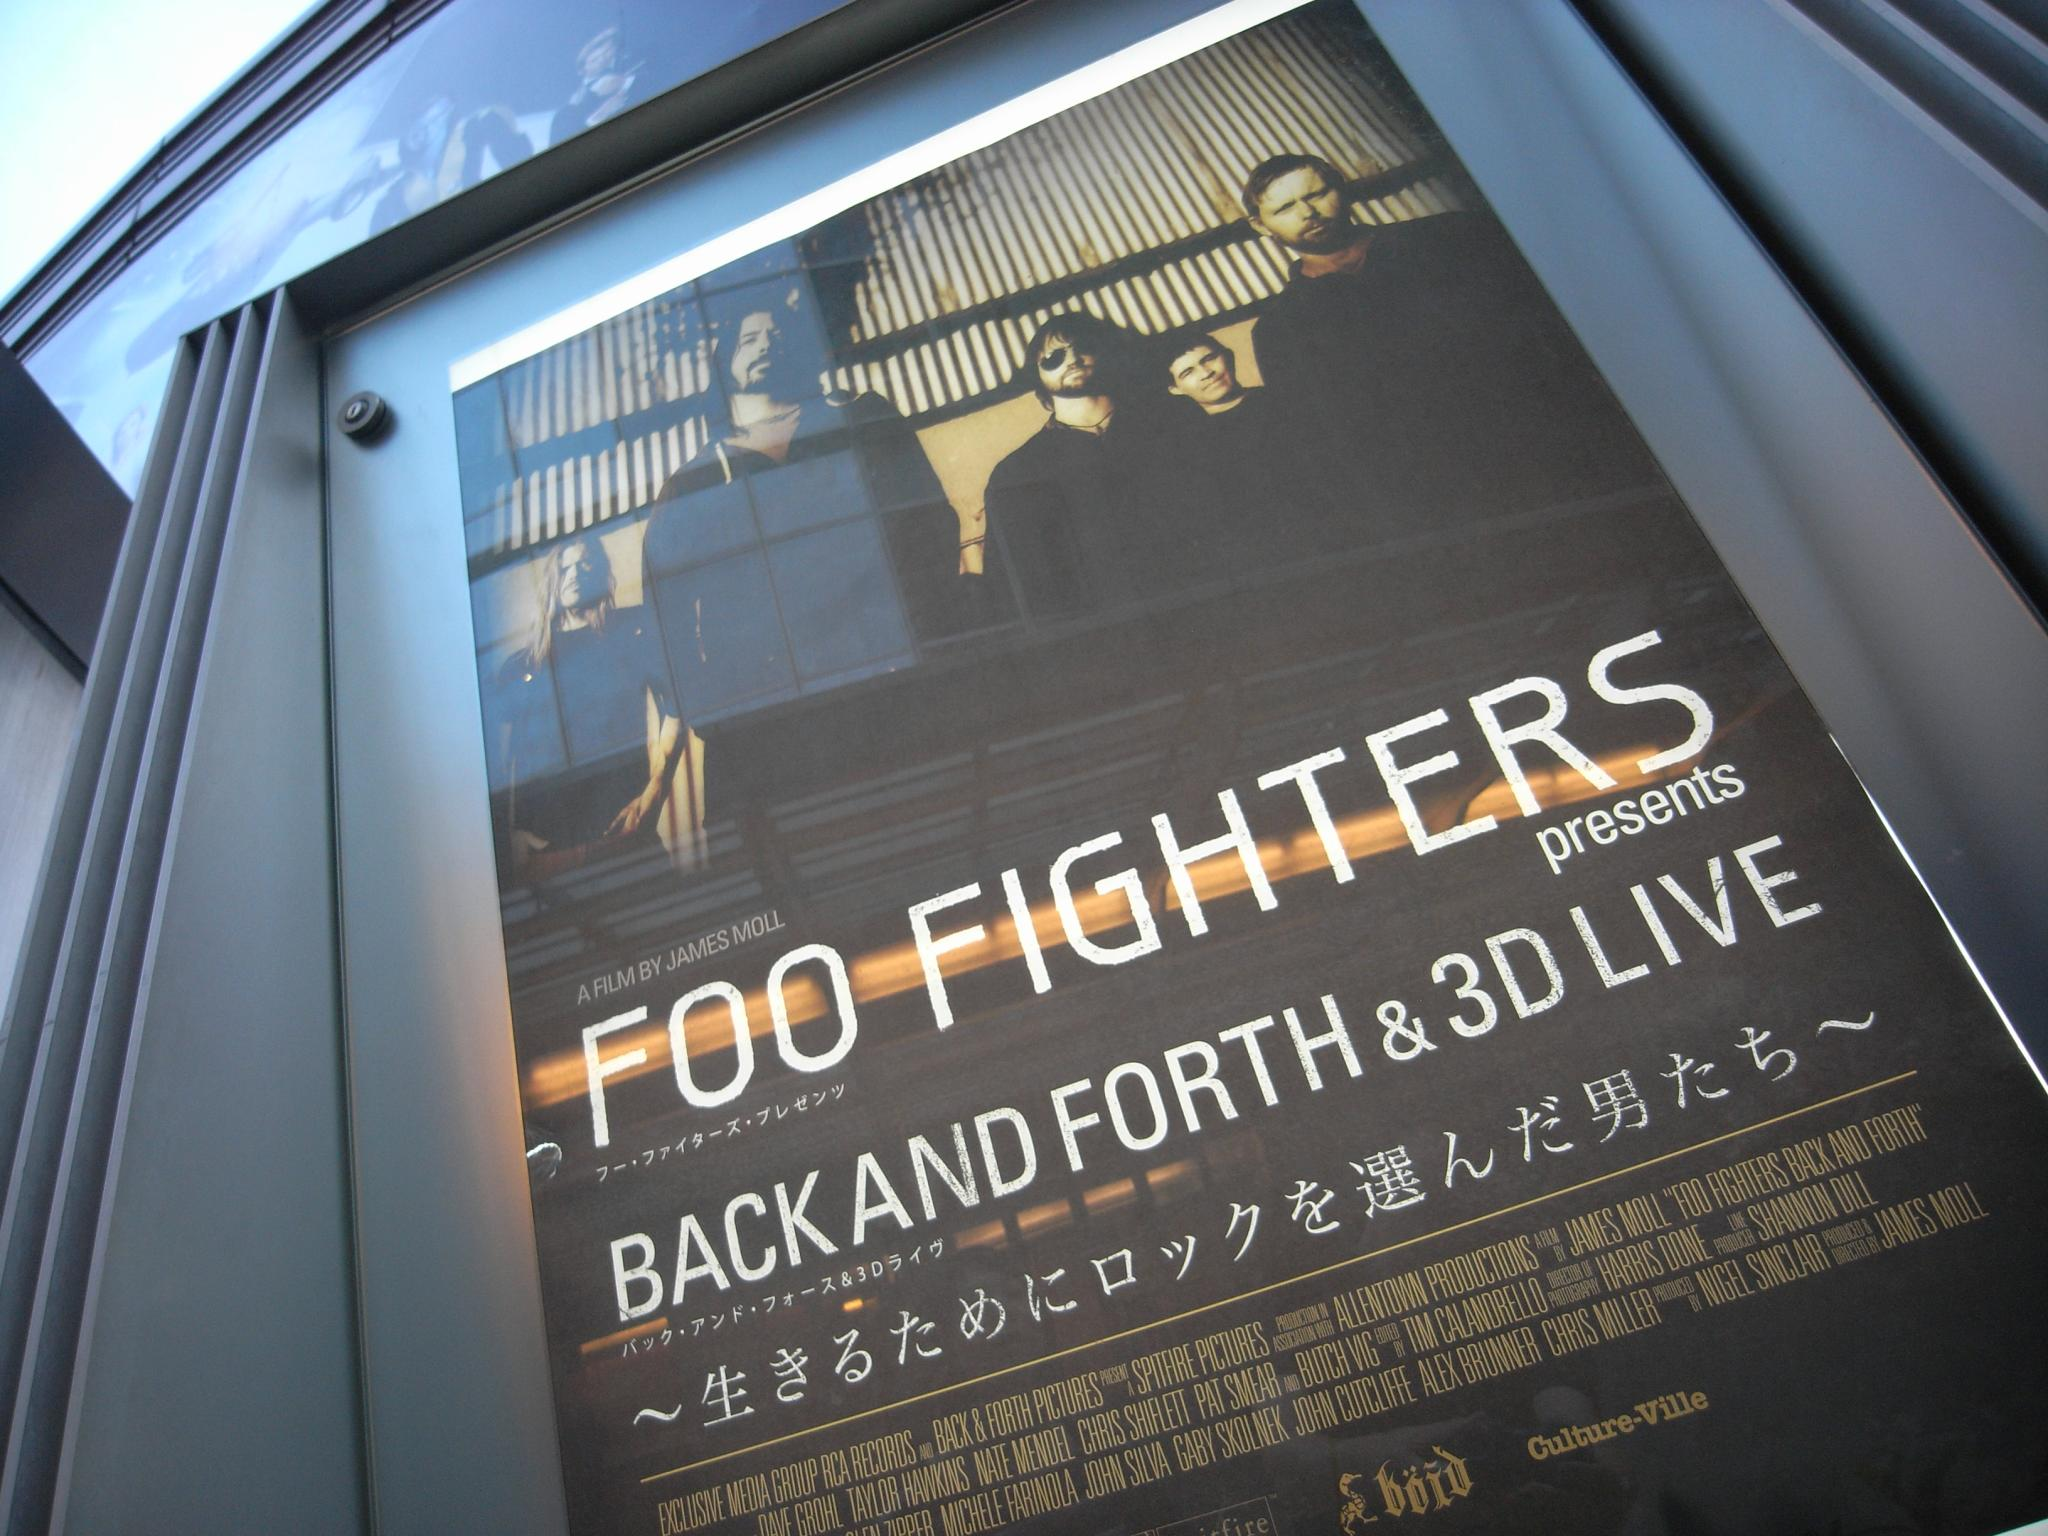 Foo Fighters: Back and Forth - TinklePad